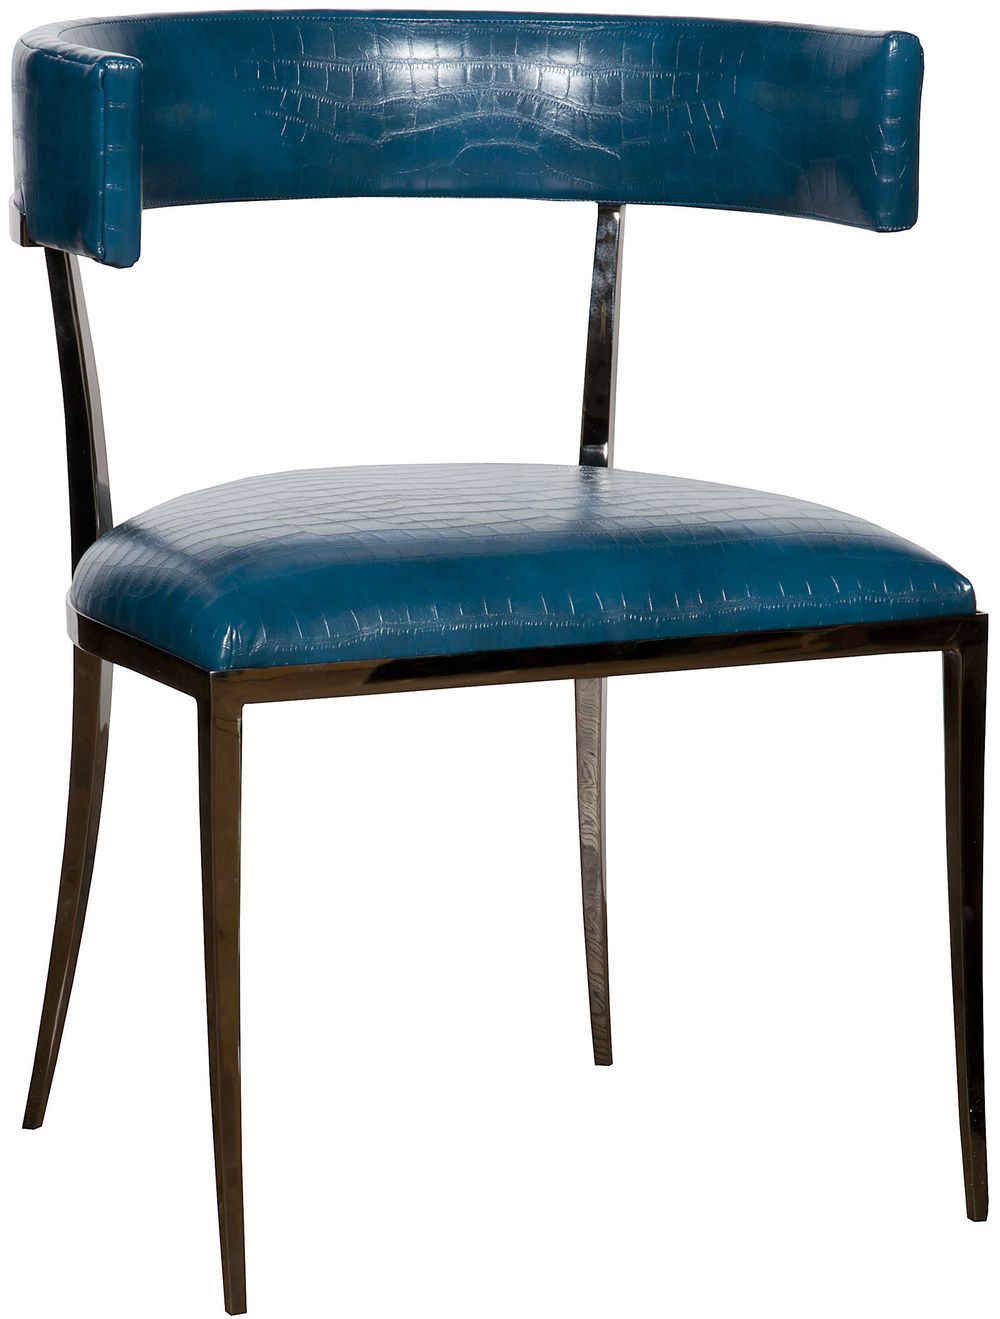 Vanguard Furniture - Greer Metal Frame Chair